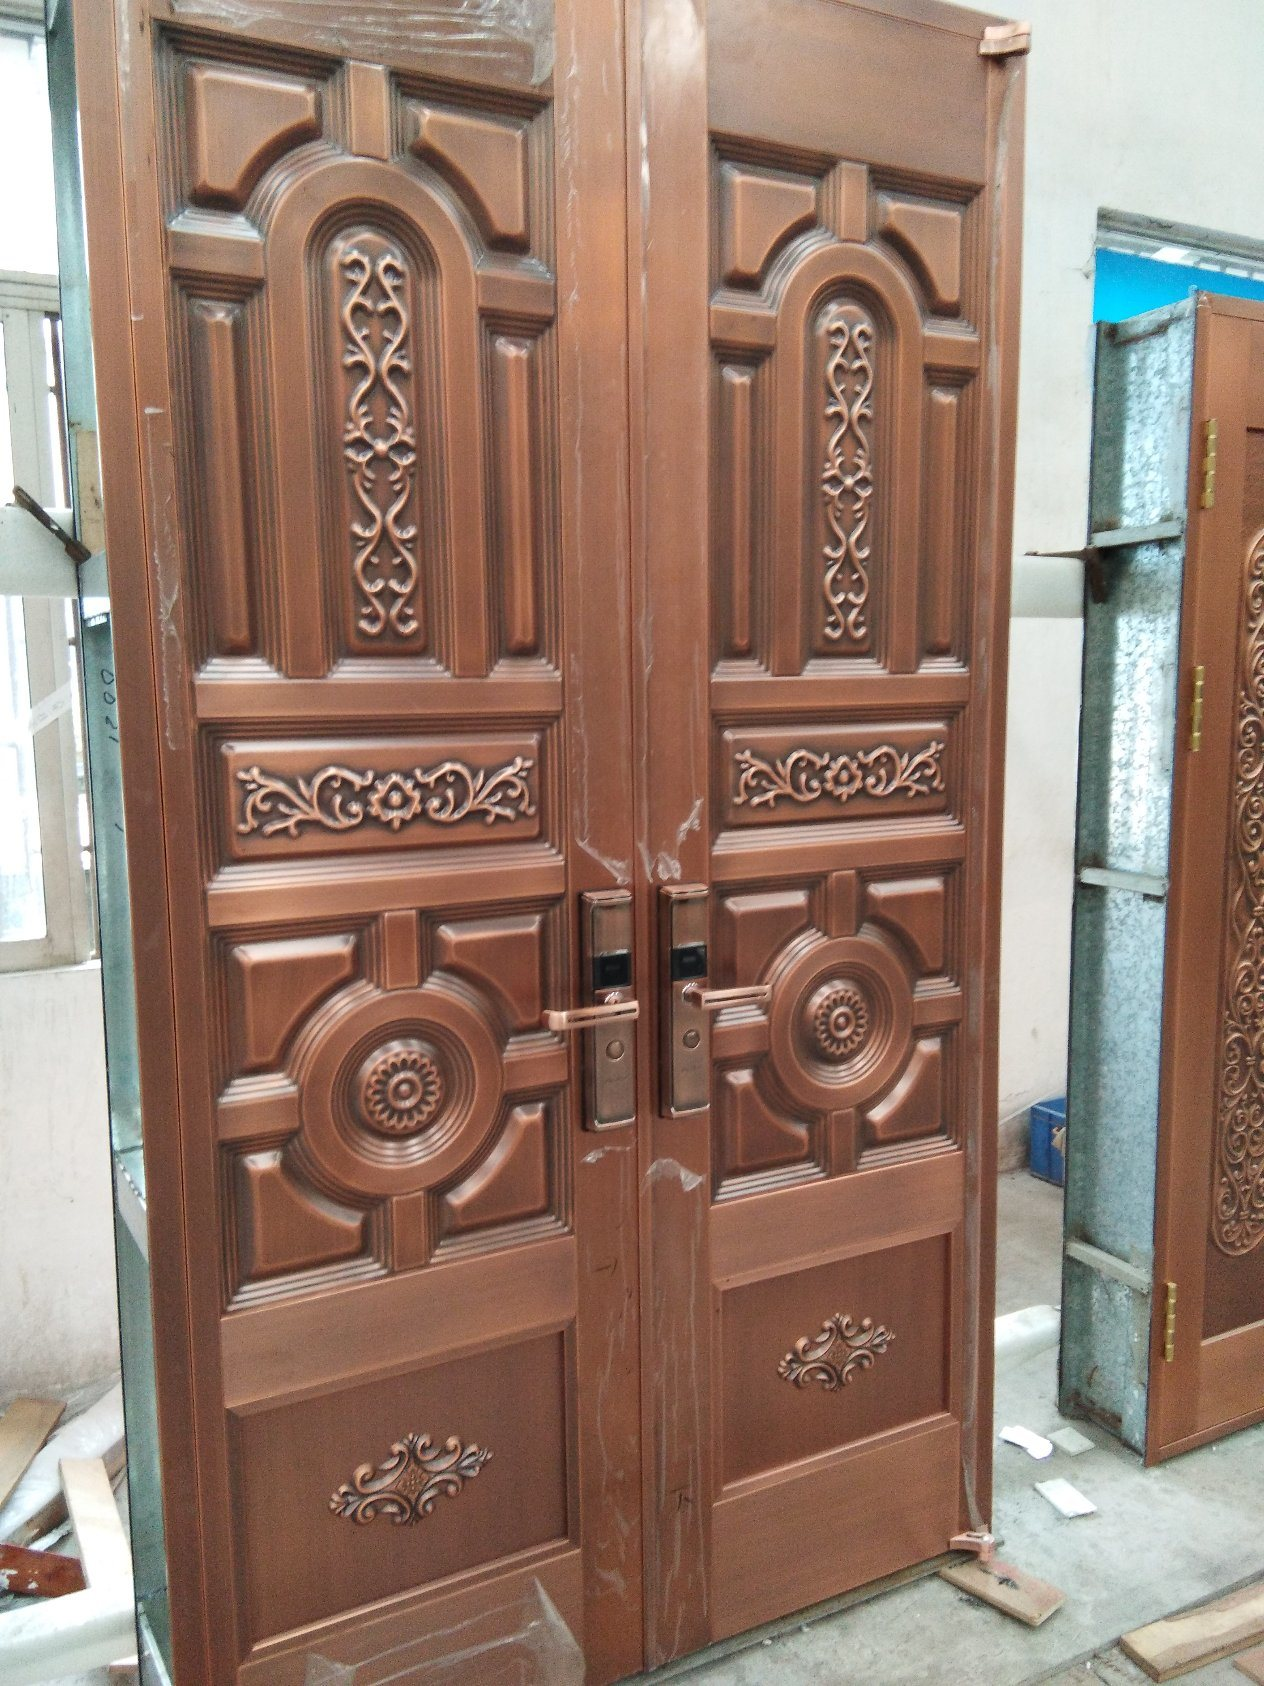 China Foshan Door Manufacturer Top Quality Handmade Copper Door for House Entrance - China Copper Door Bronze Door & China Foshan Door Manufacturer Top Quality Handmade Copper Door for ...